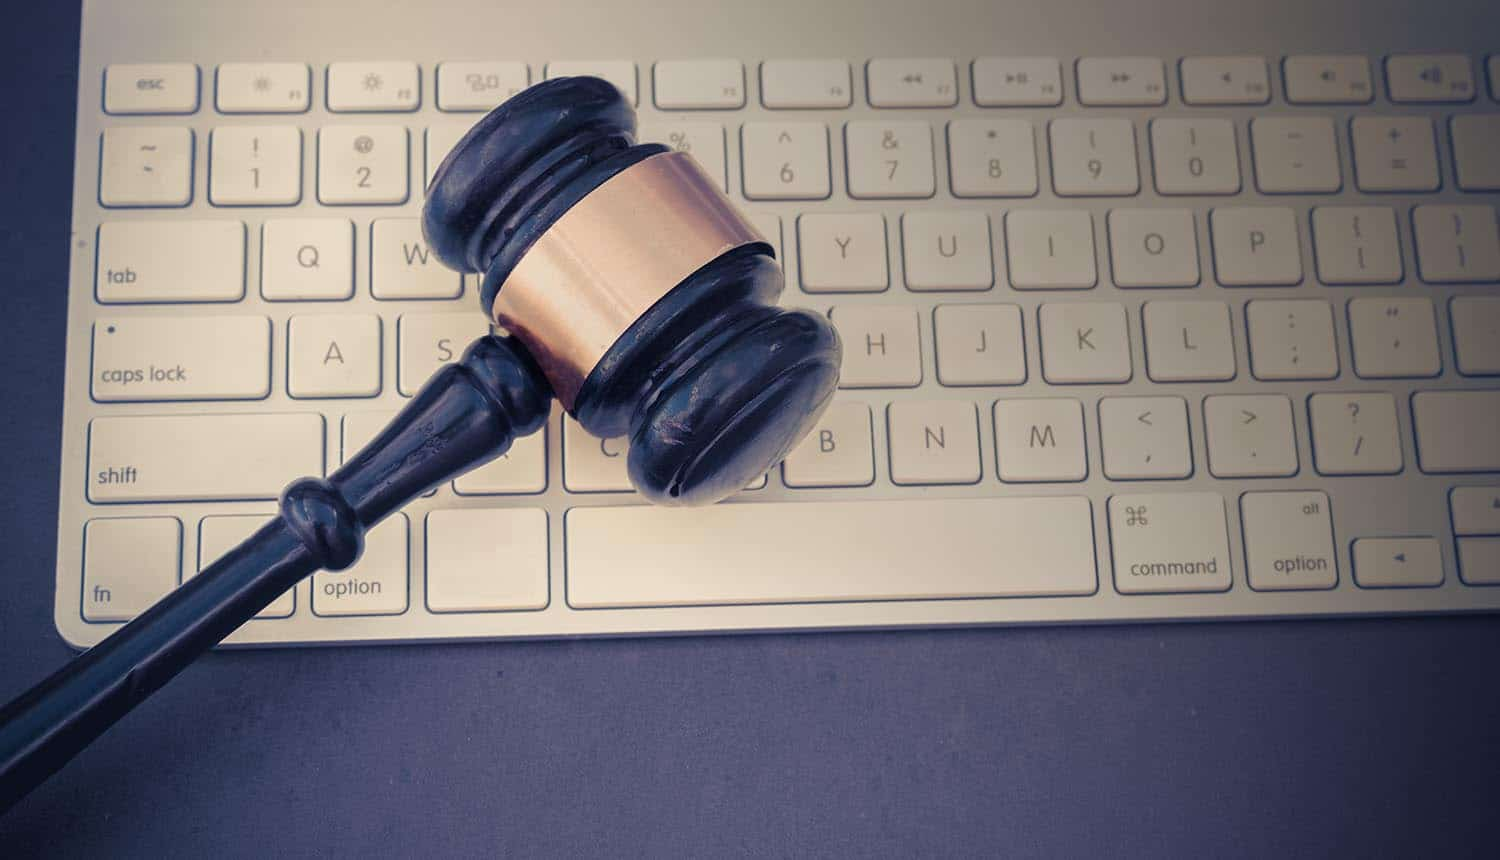 Gavel on keyboard showing privacy legislations and need for zero-party data (ZPD)